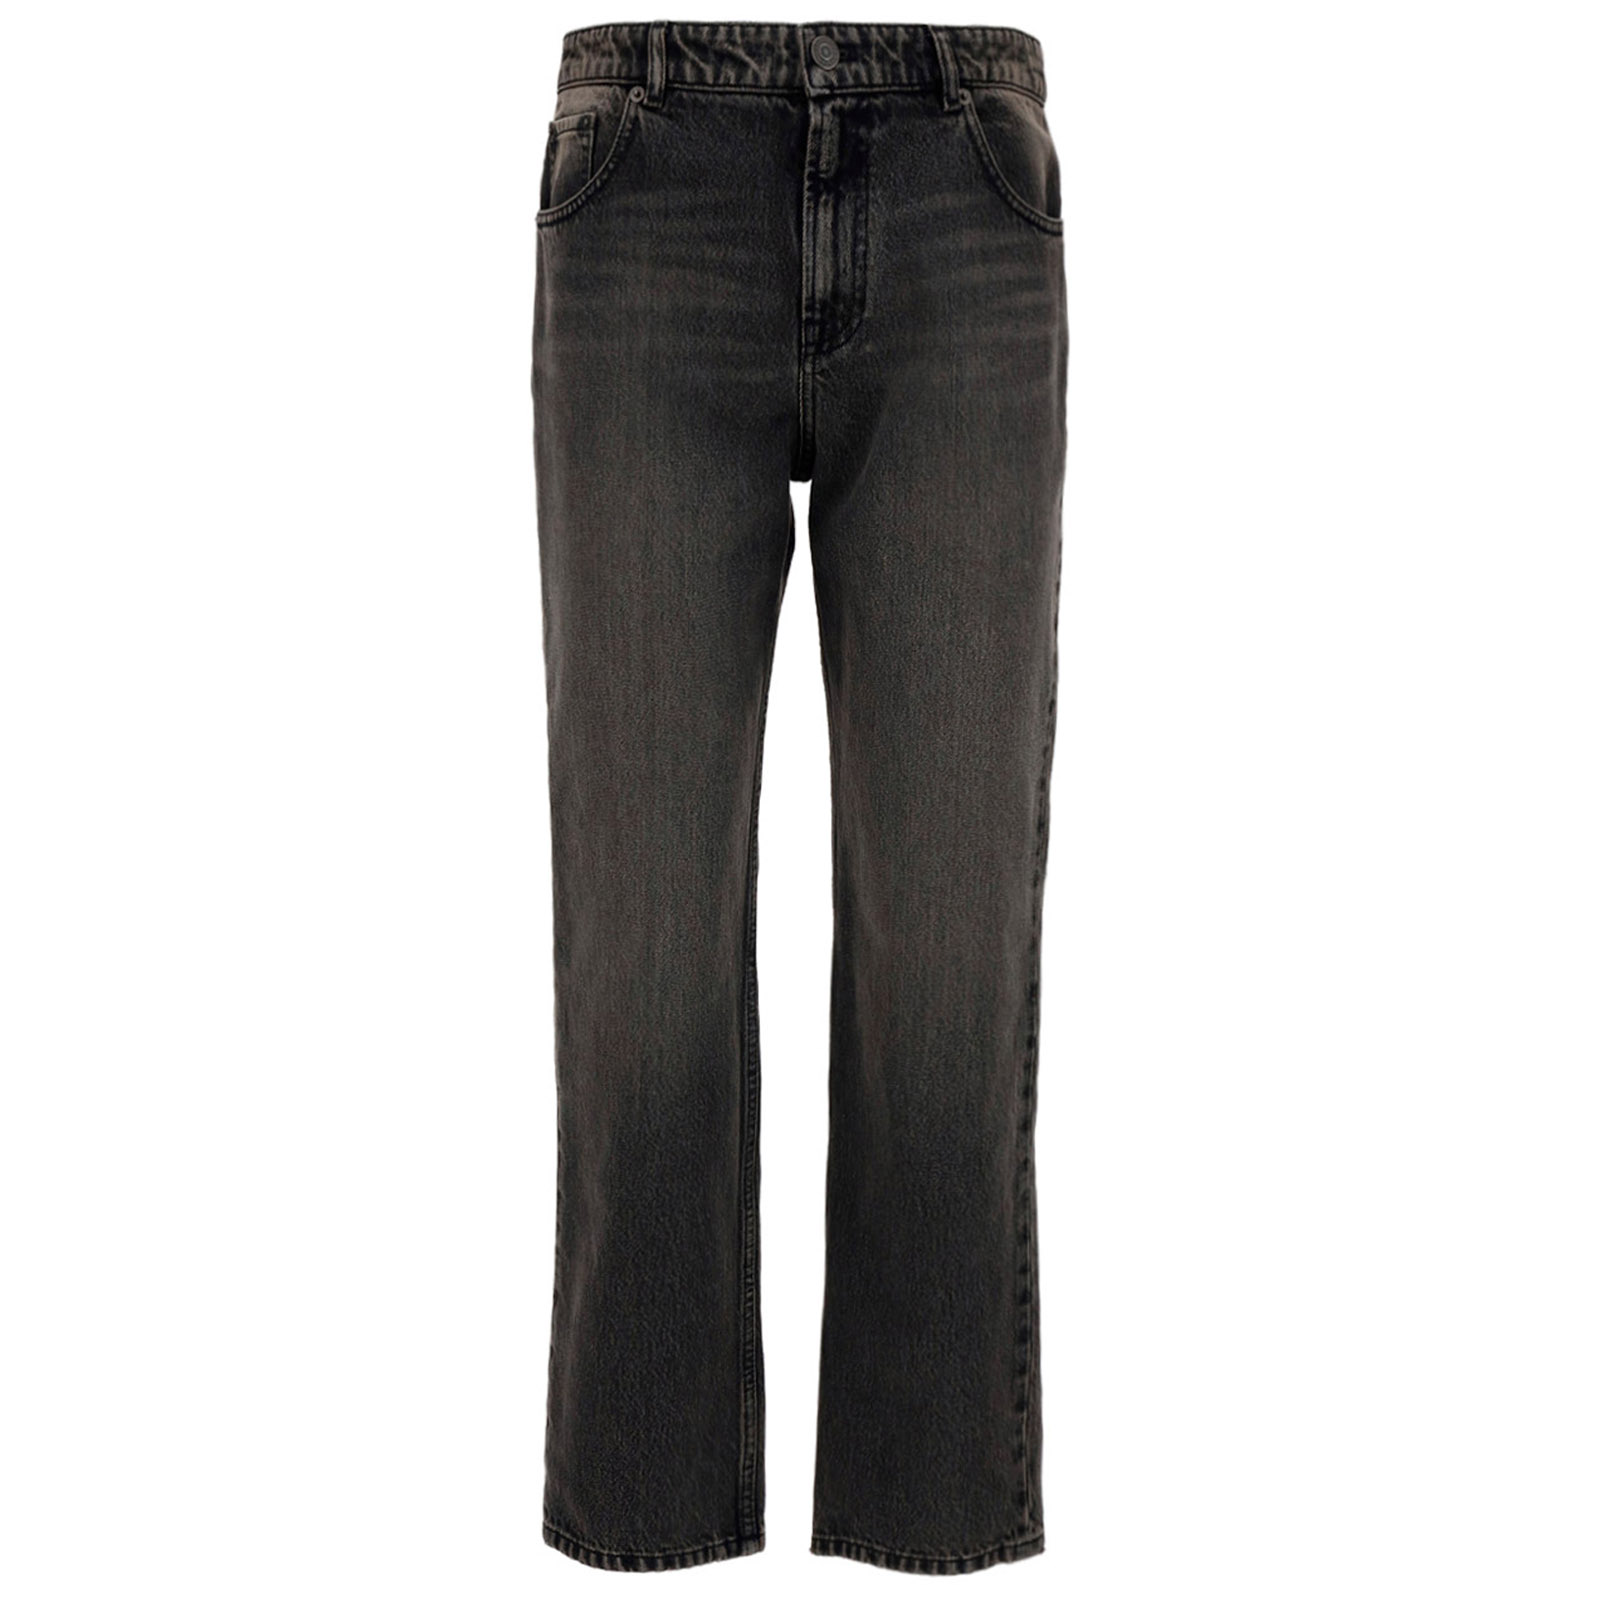 Balenciaga WOMEN'S STRAIGHT FIT JEANS